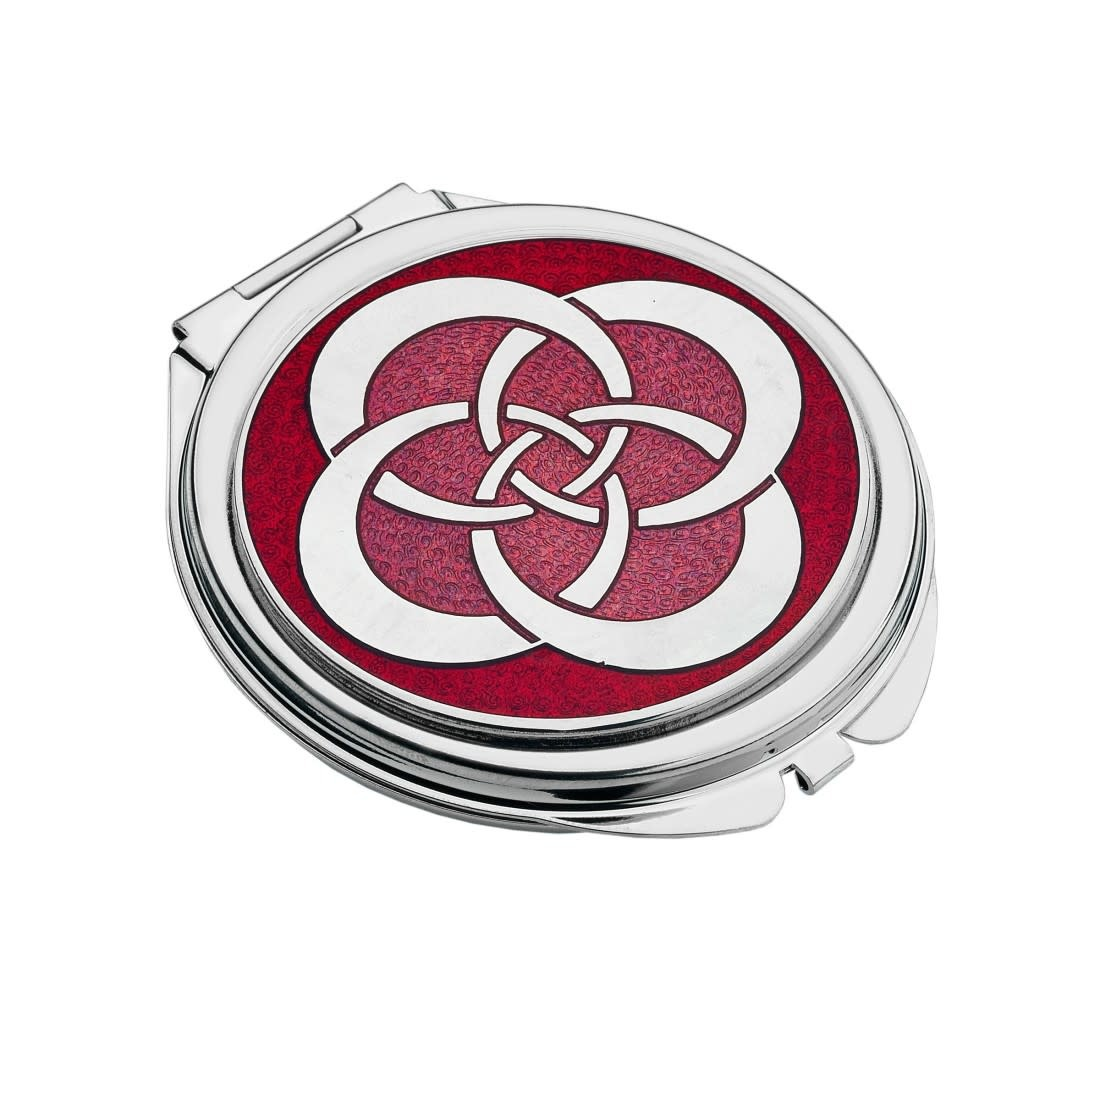 Mirror: Compact, Celtic Knot Circles